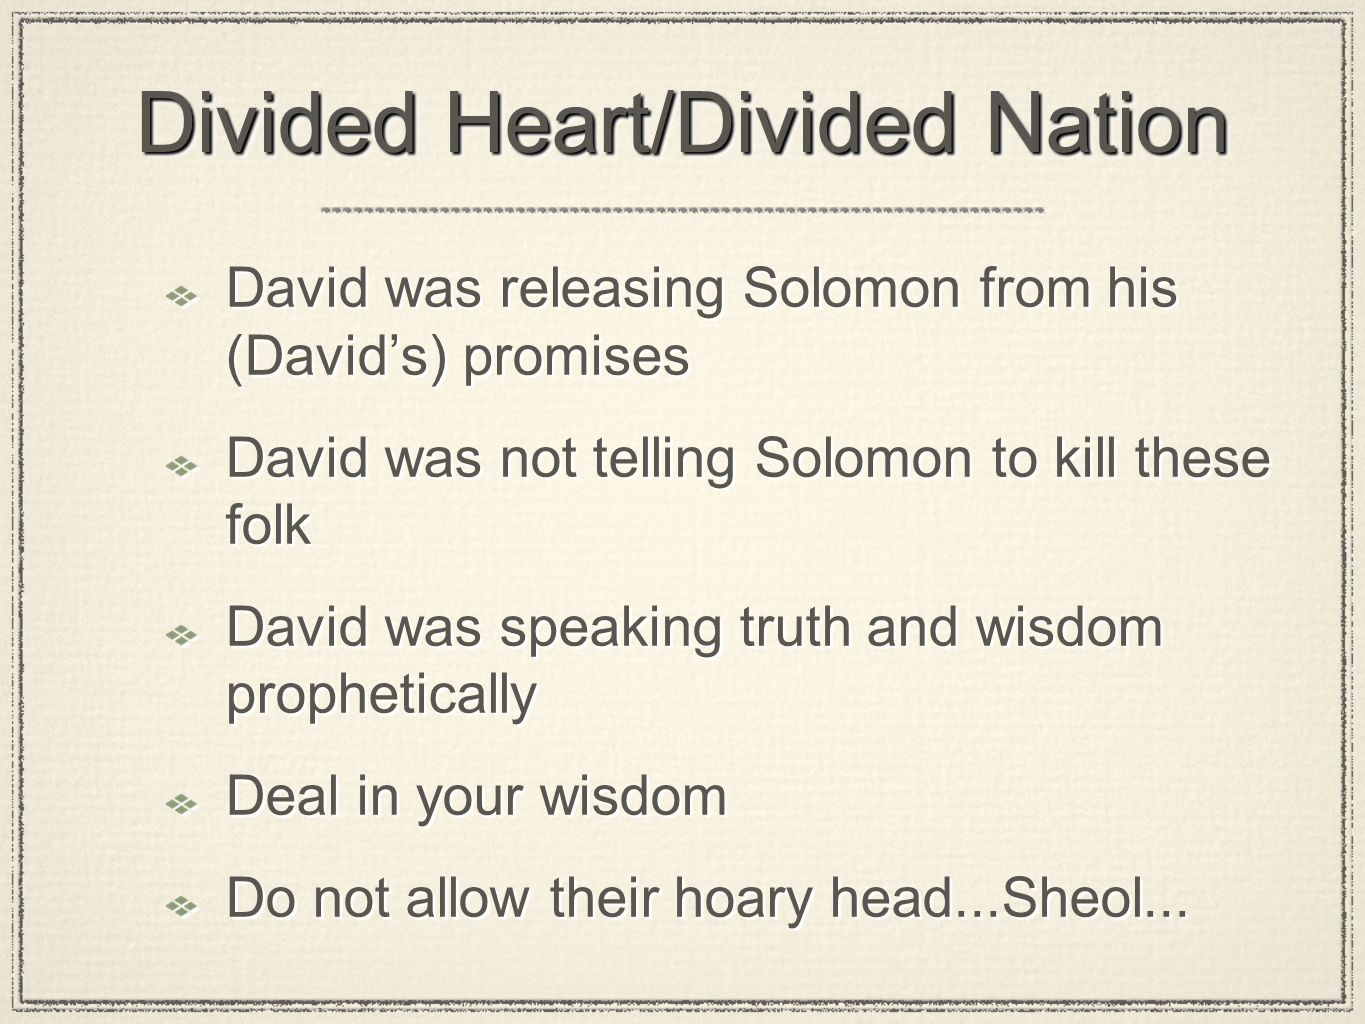 Divided Heart/Divided Nation David was releasing Solomon from his (David's) promises David was not telling Solomon to kill these folk David was speaking truth and wisdom prophetically Deal in your wisdom Do not allow their hoary head...Sheol...